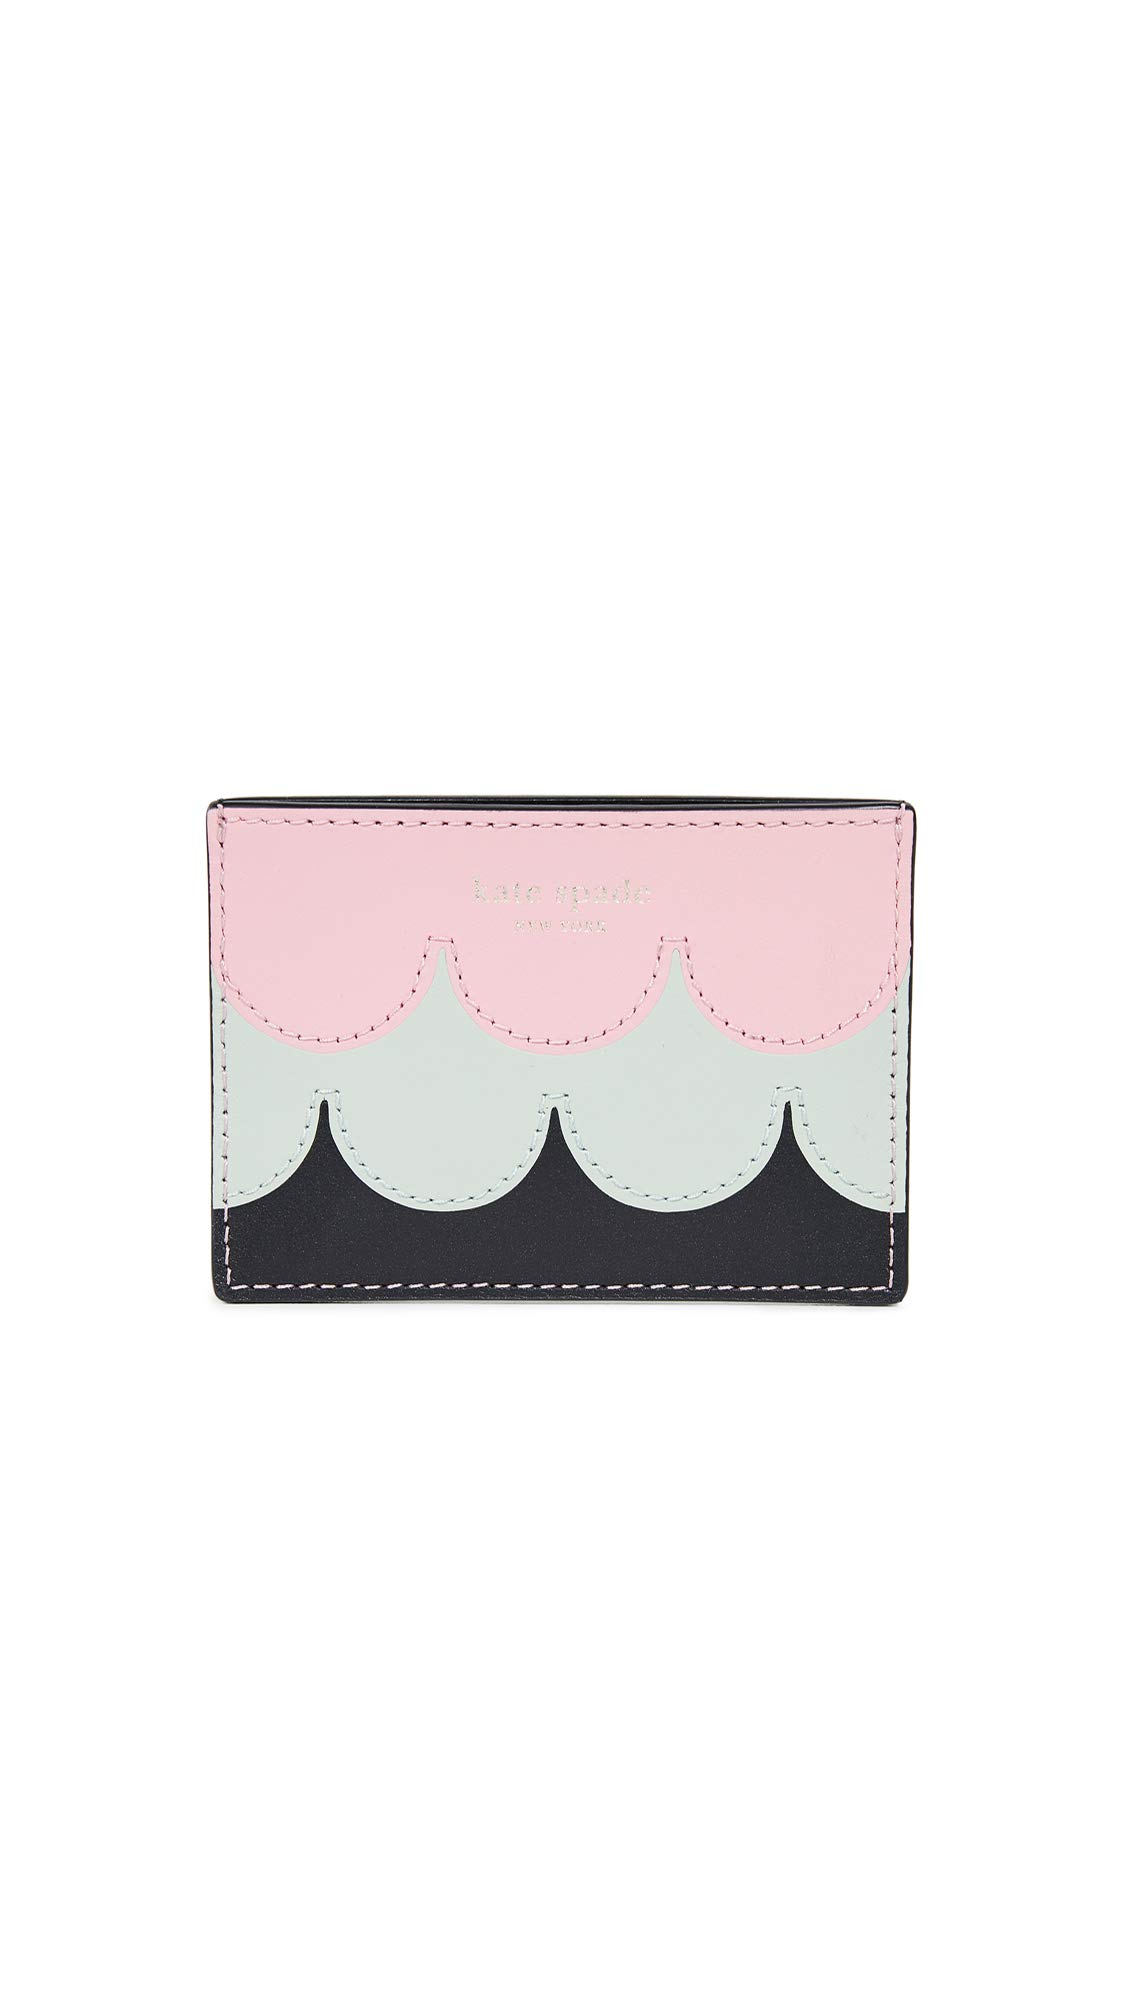 Kate Spade New York Women's Intarsia Scallop Card Holder, Rococo Pink, One Size